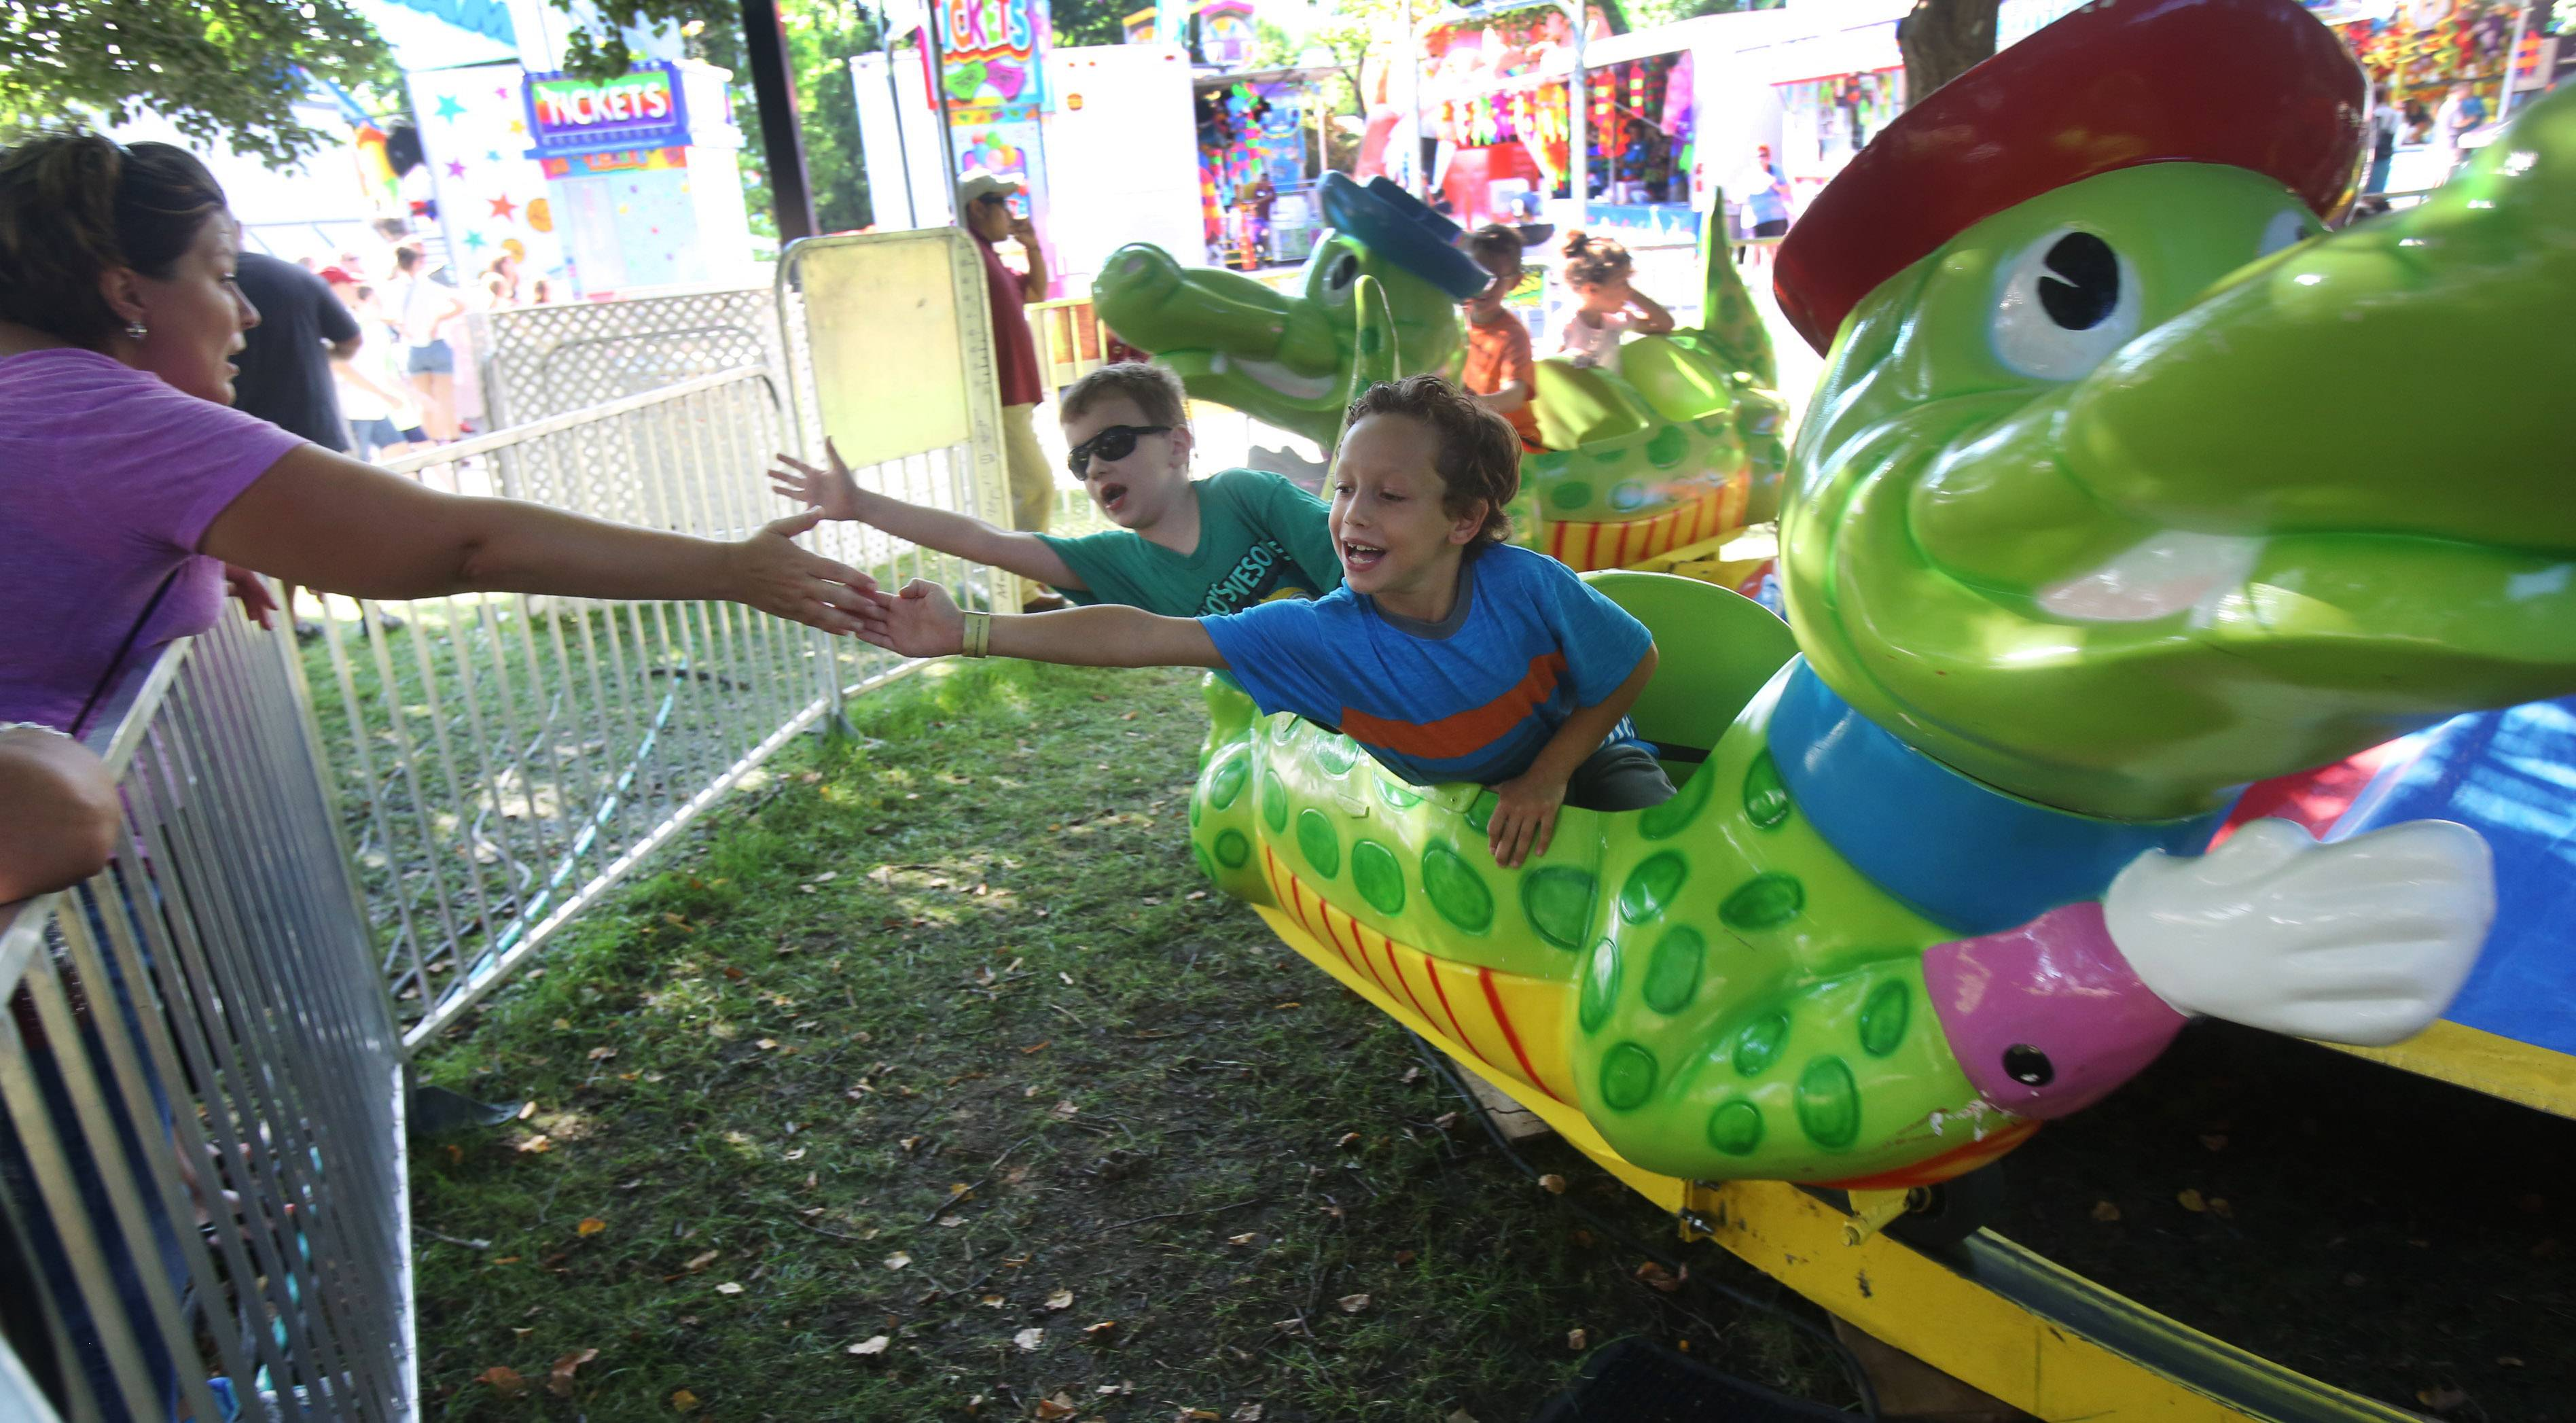 Seven-year-olds Domininc Samolinski, right, and Joe Stomiany, reach out to touch the hand of Melanie Gomez of Elk Grove Village on the Gator ride during Schaumburg's 44th Annual Septemberfest Sunday on the Schaumburg municipal grounds. The festival featured Brain Howe, lead singer of the band Bad Company, and fireworks later in the evening..